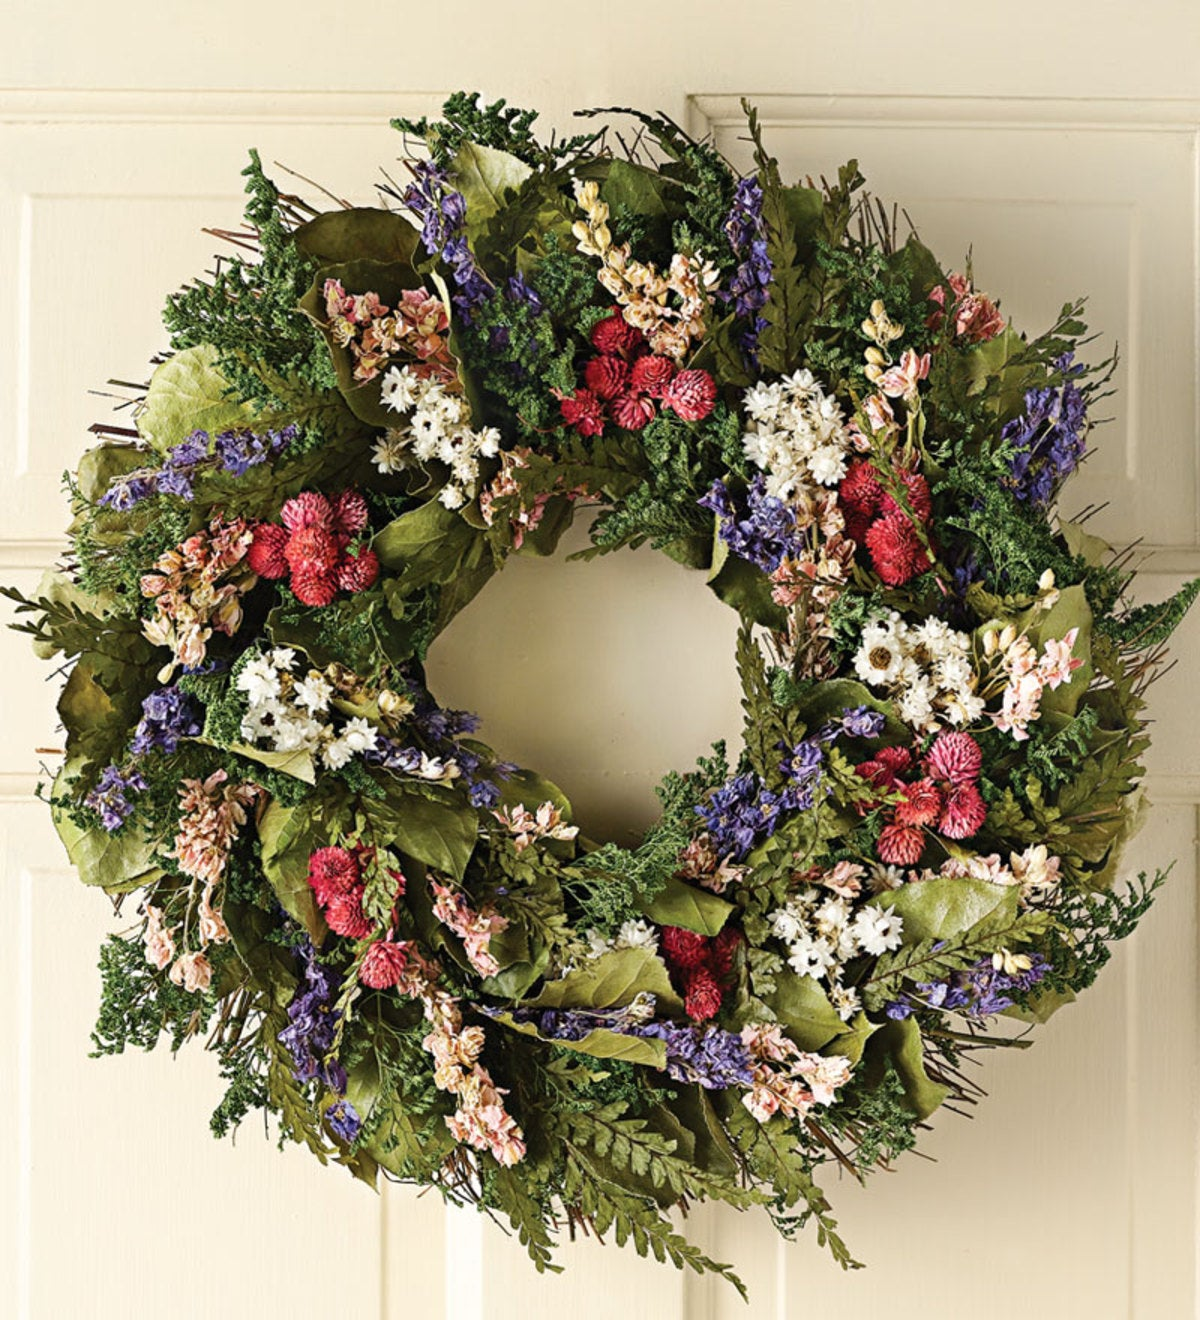 Rose and Lavender Wreath